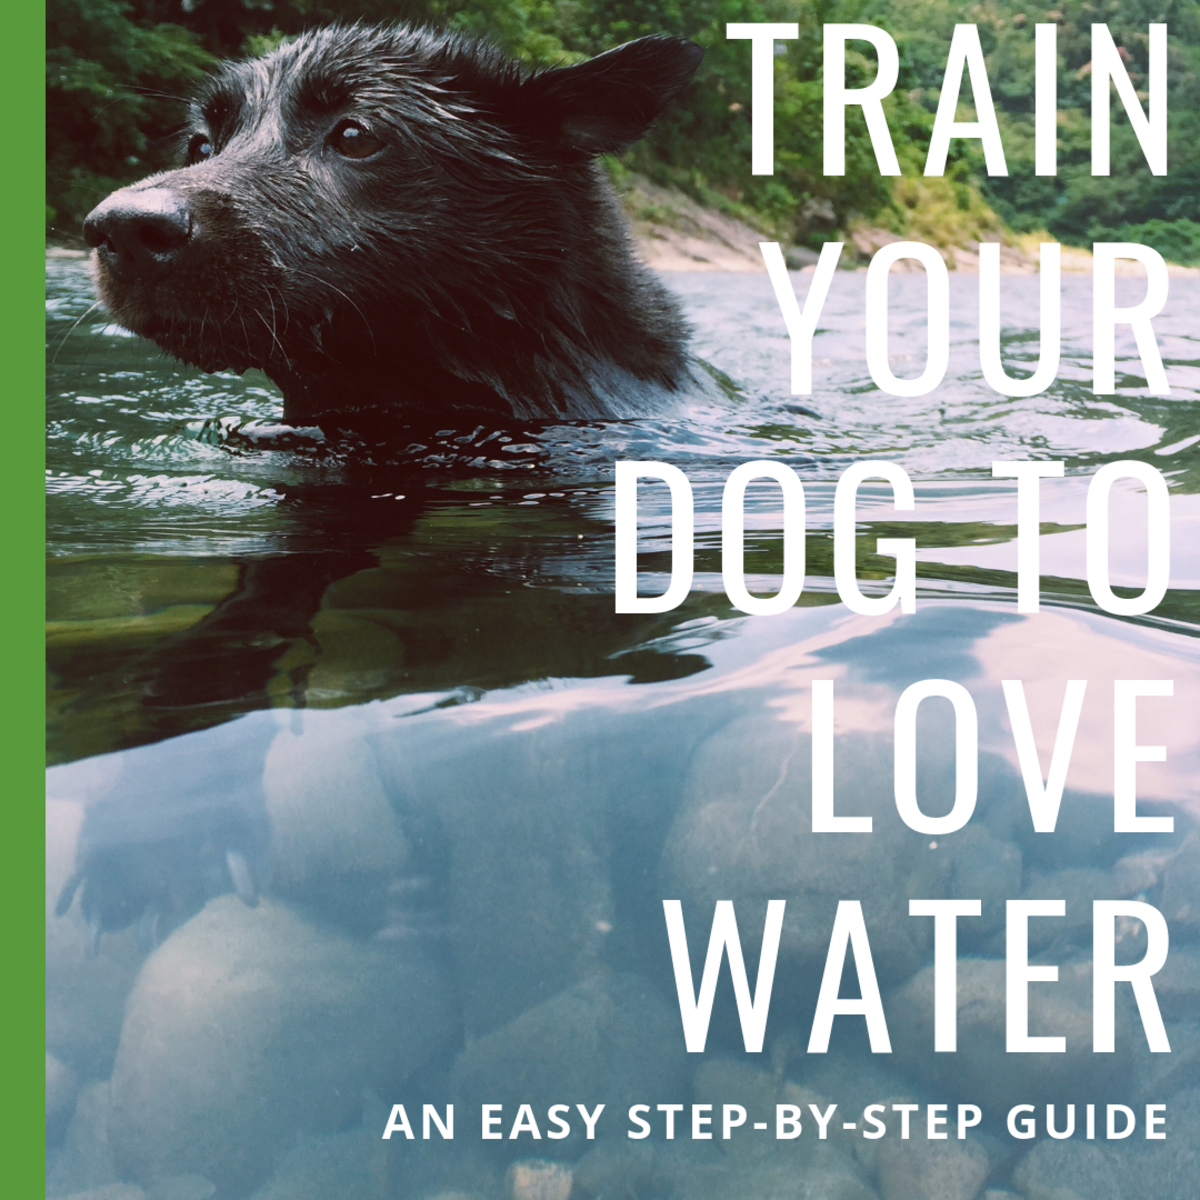 How to Bathe Big Dogs That Are Afraid of Water